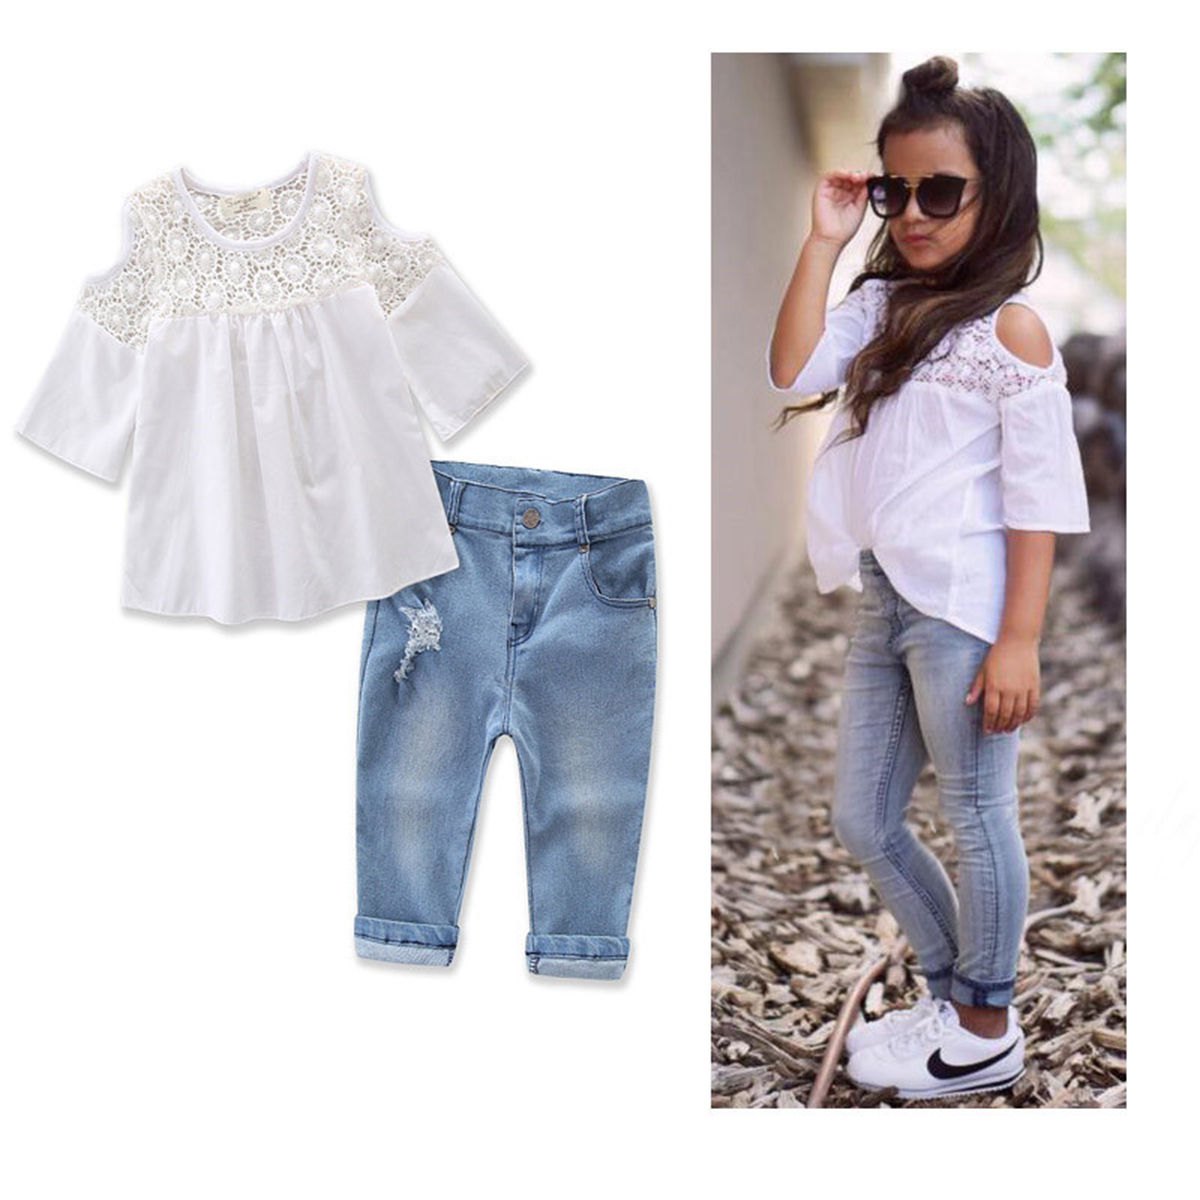 cbc31909c9ef Baby Girls Summer Clothes Children Set Kid Hollow Lace T Shirt Off Shoulder  Blouse Jeans Hole Denim Pants Outfits 2-7 Years